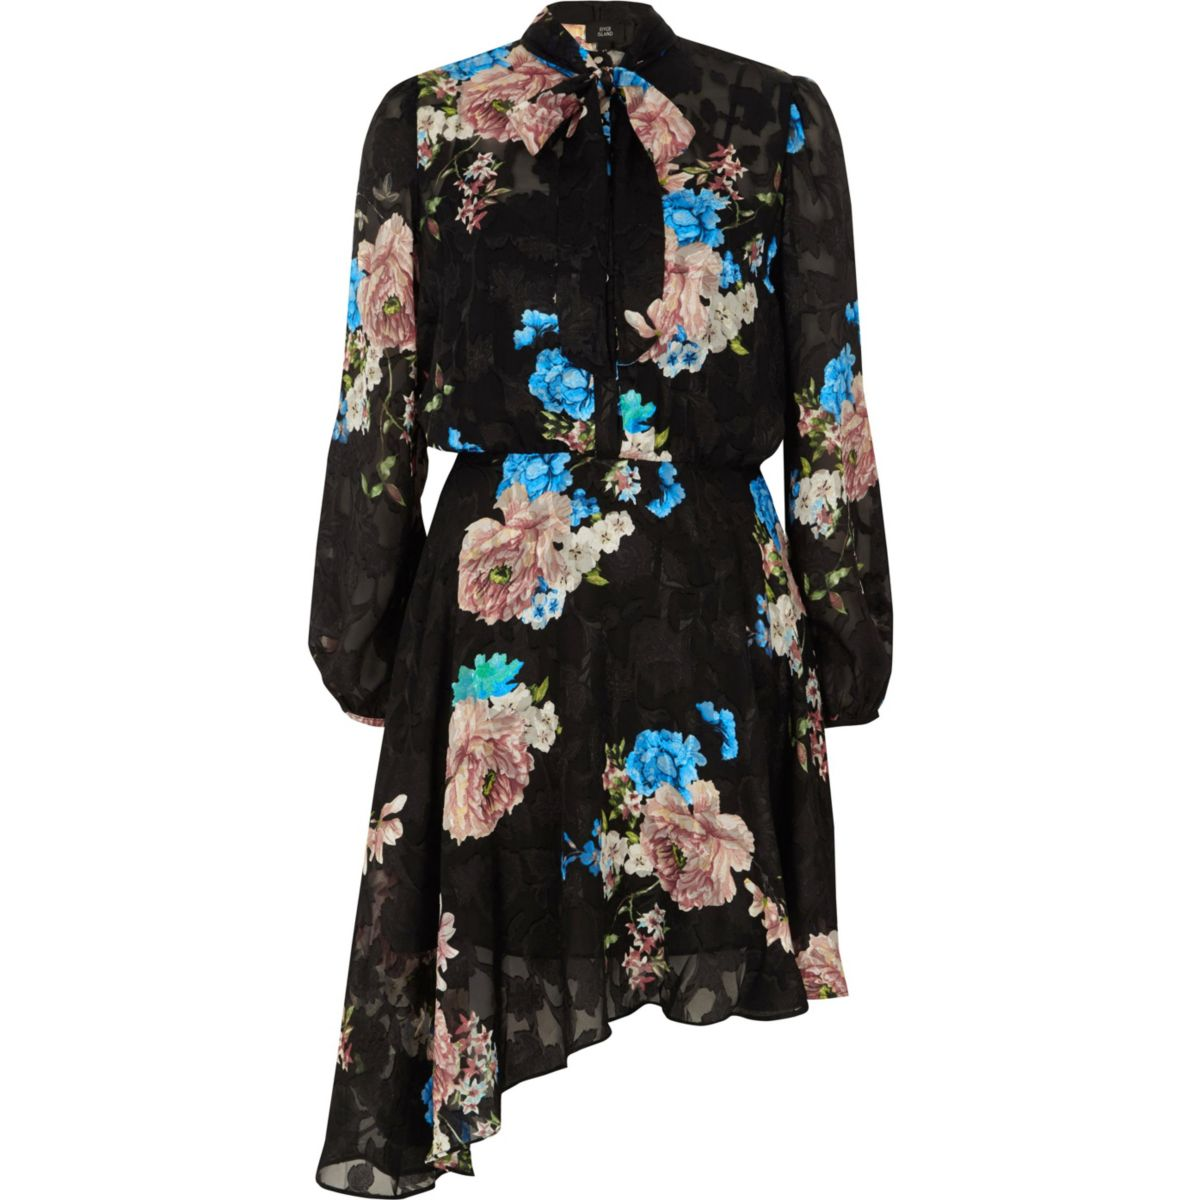 Black lace floral tie neck dress